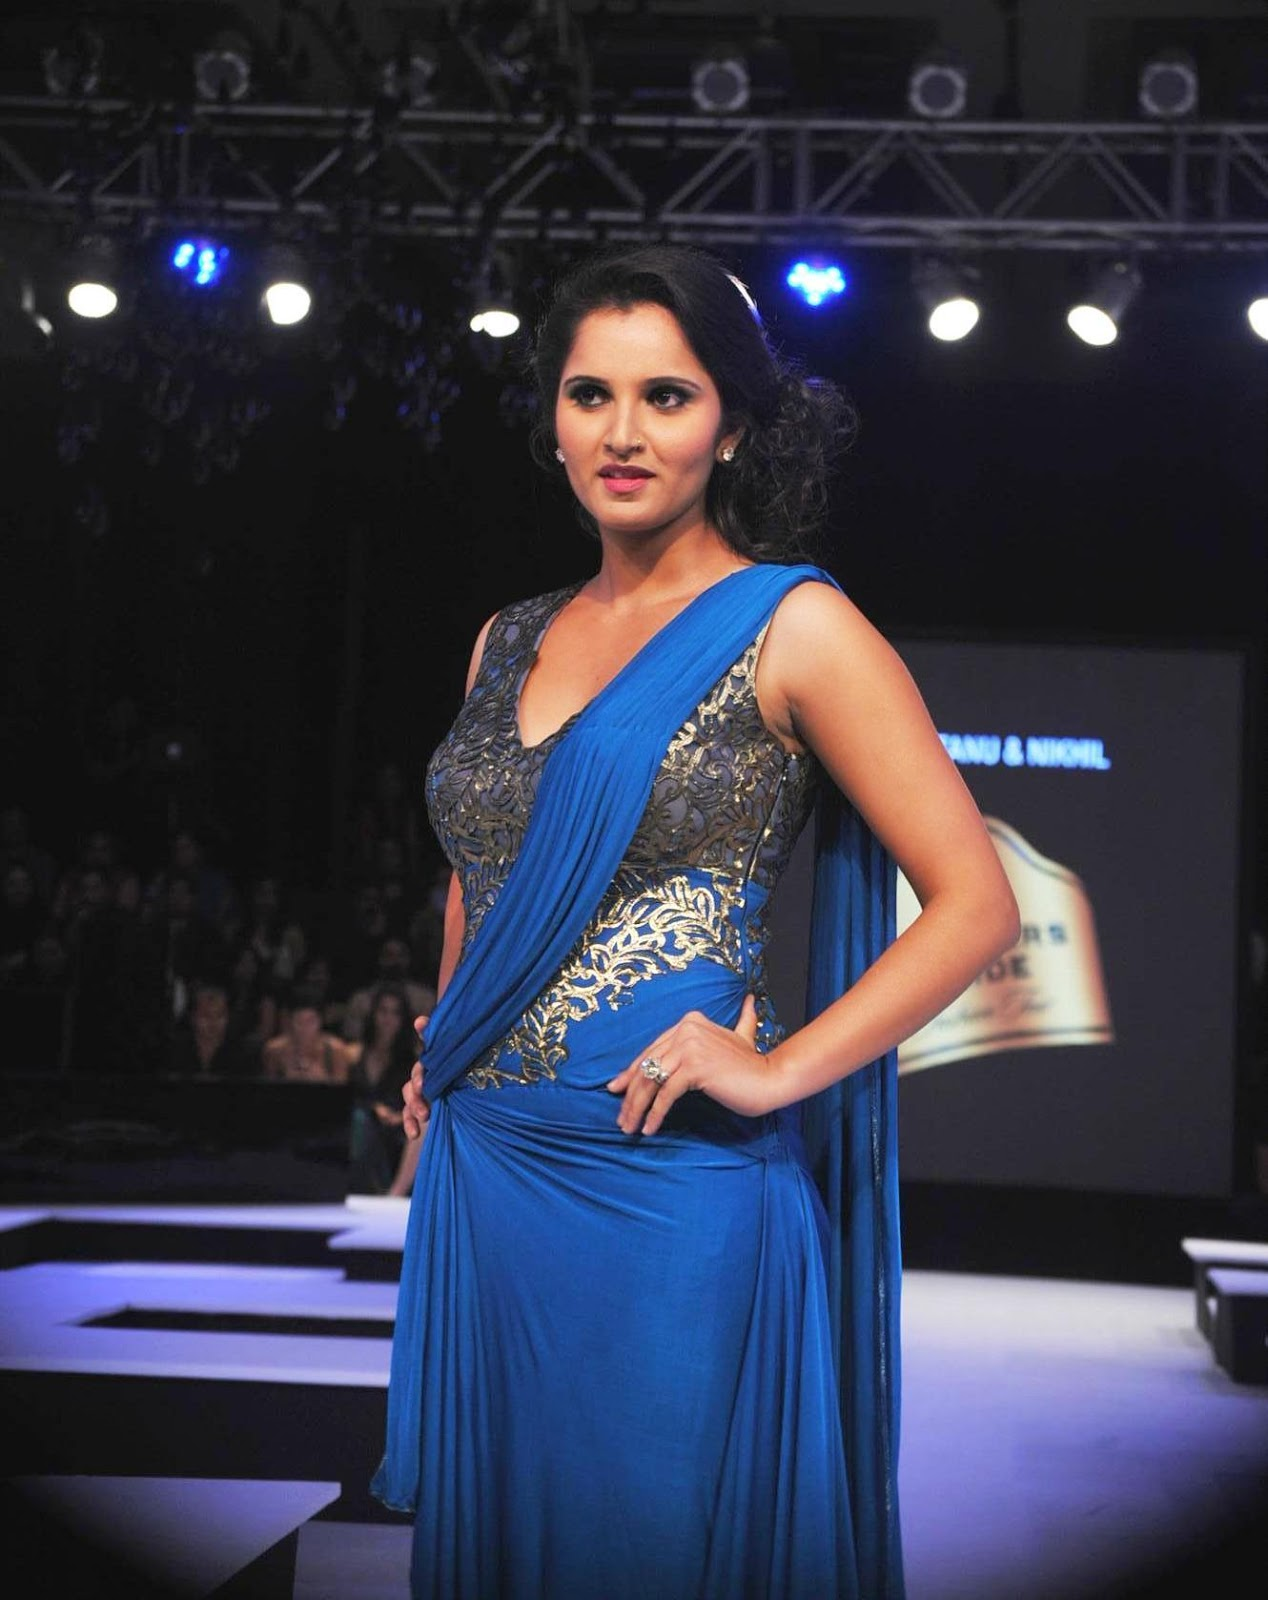 High Quality Bollywood Celebrity Pictures Sania Mirza -2266